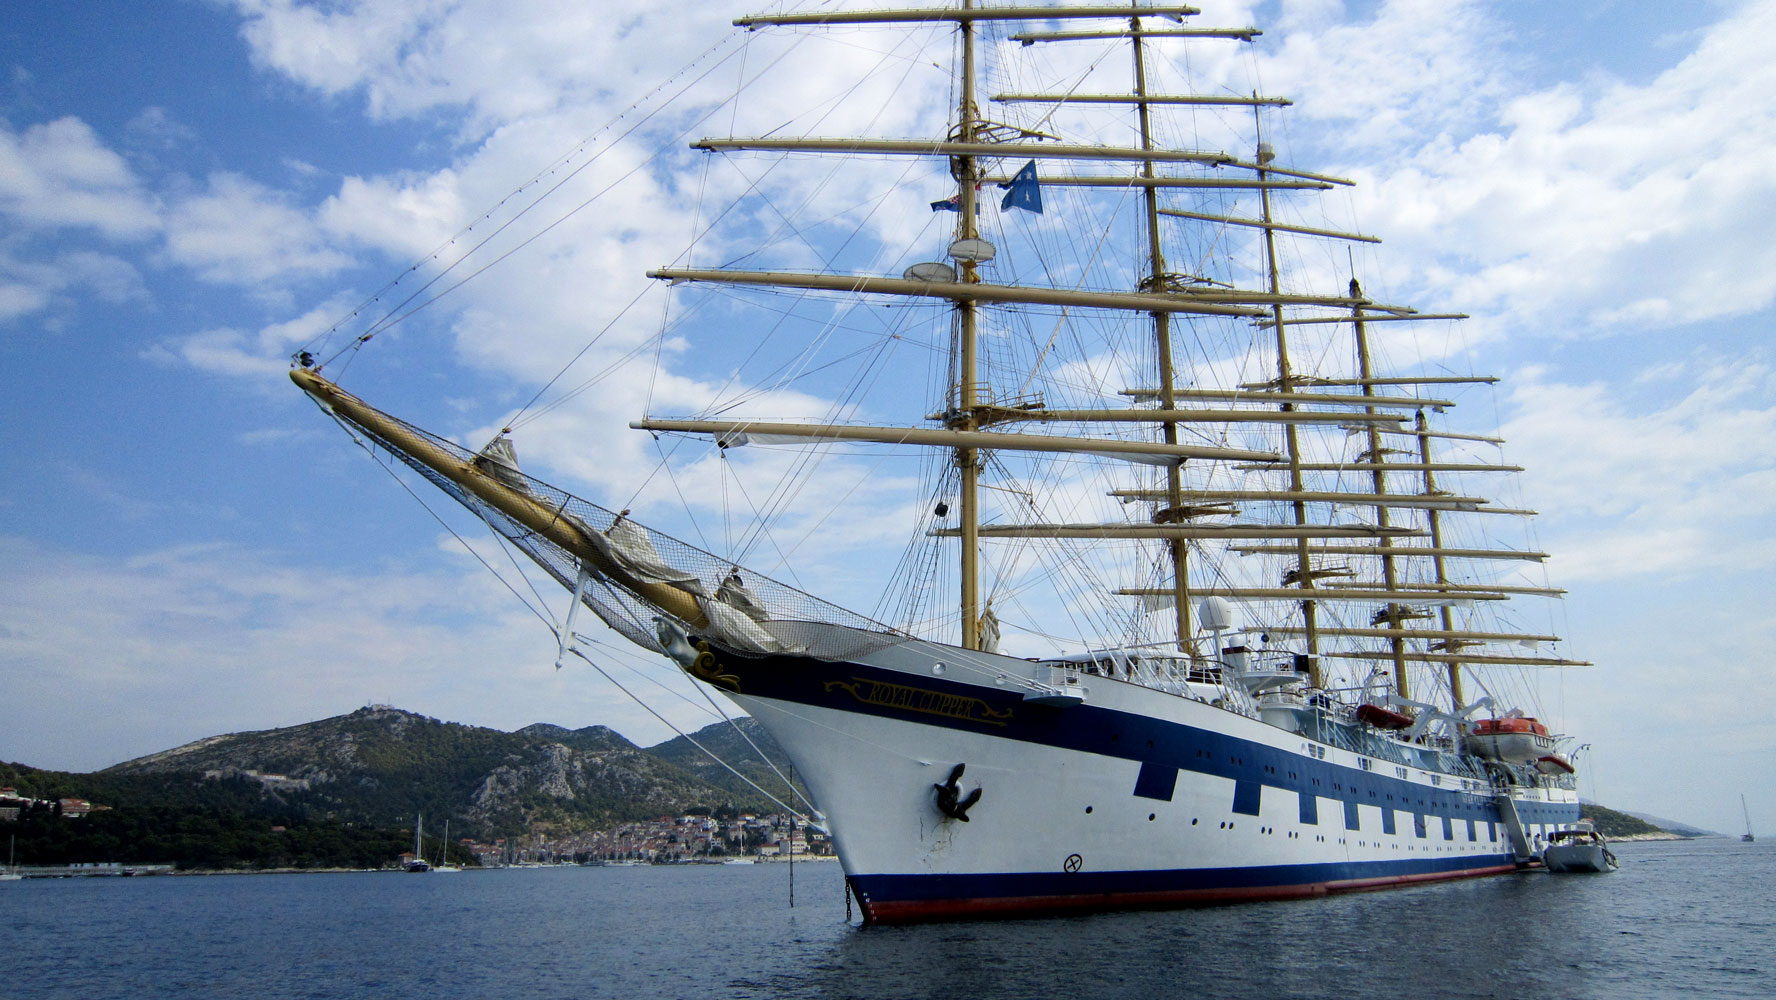 About Star Clippers